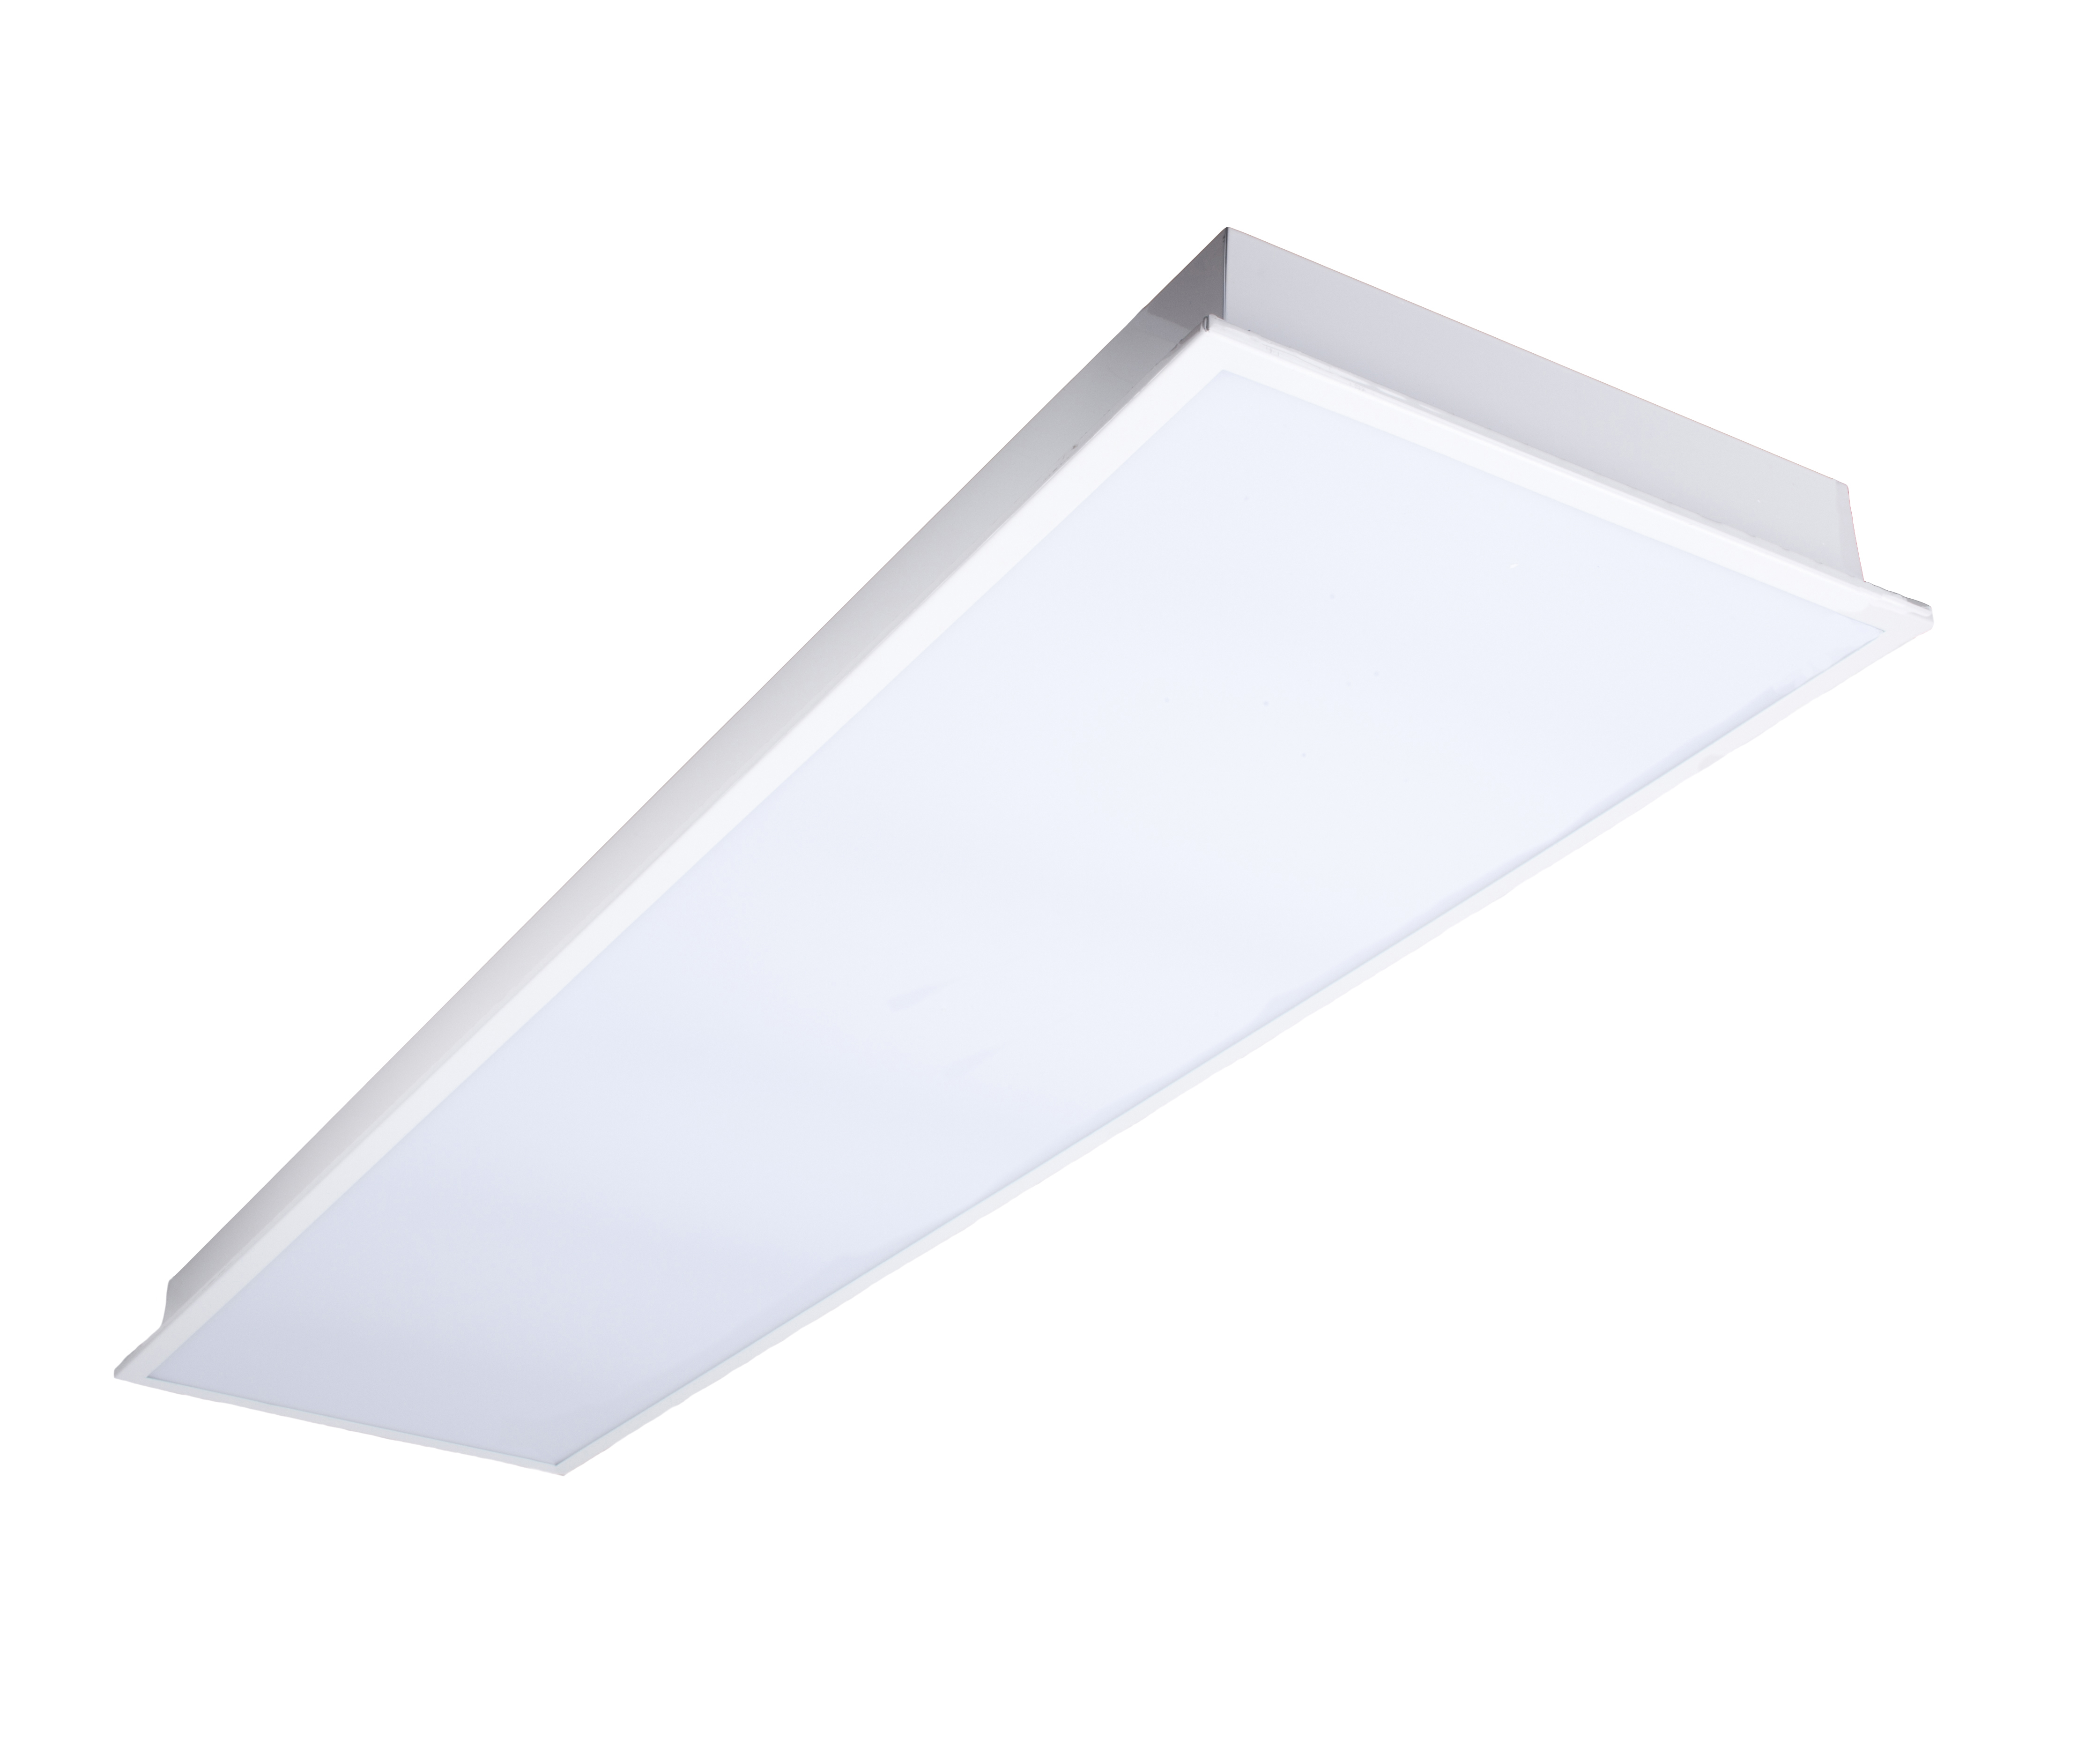 14PNL35/835/LED 80917 LED FLAT PANEL 1x4 35W 3500K DIMMABLE ProLED